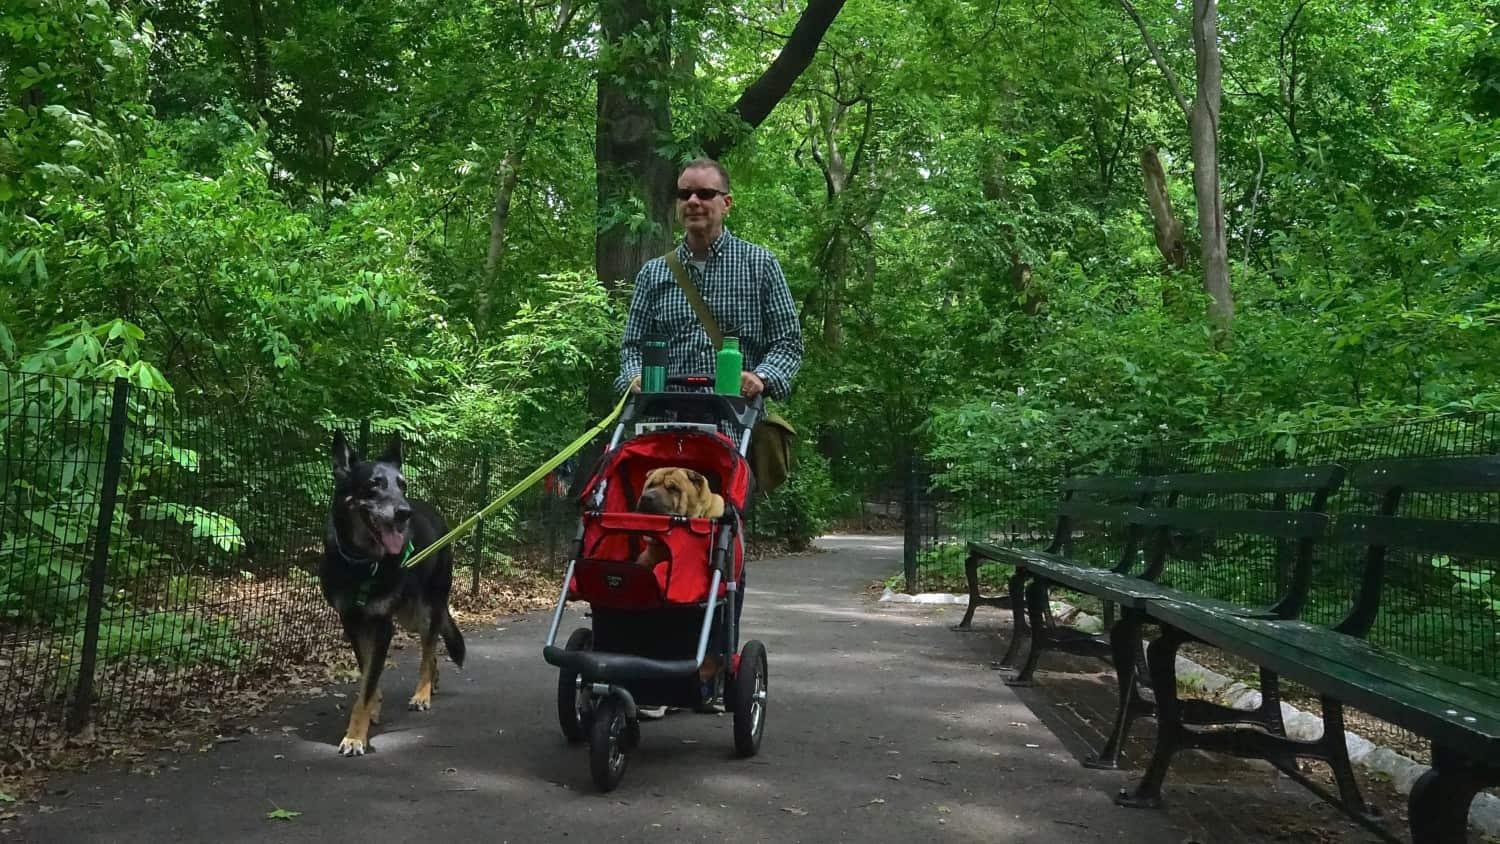 New York's Top Pet Friendly Attraction: Central Park | GoPetFriendly.com